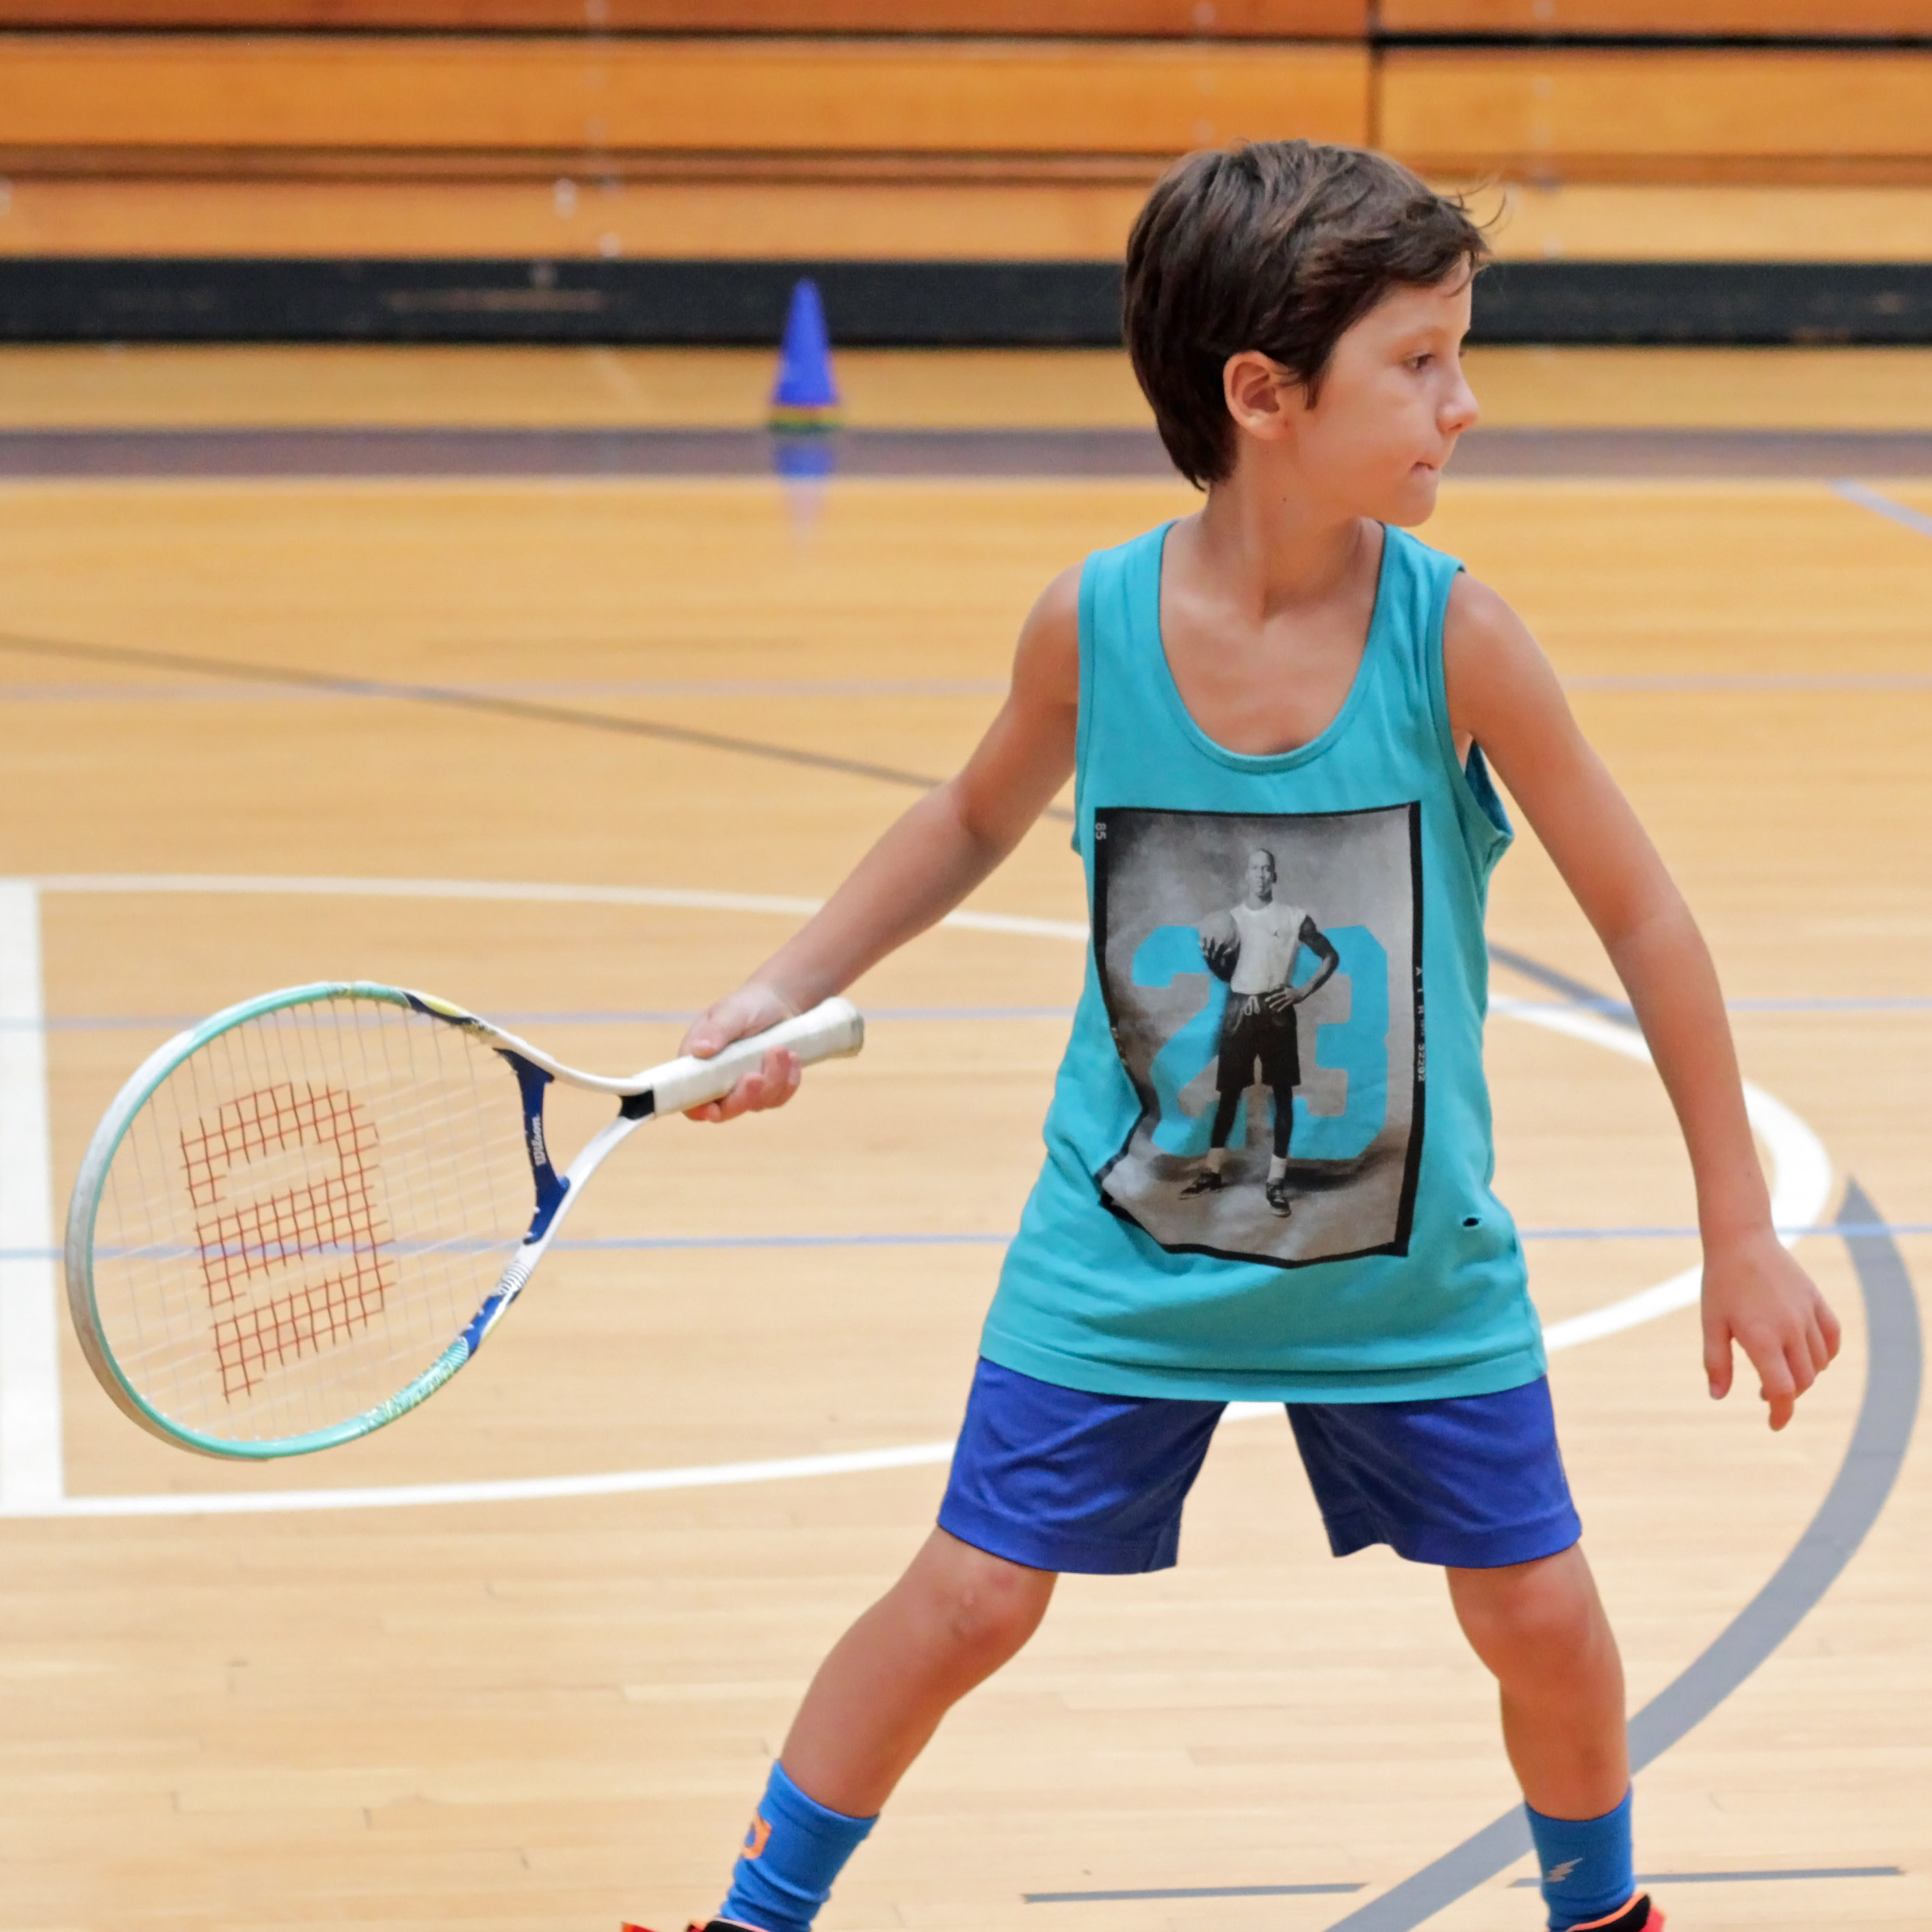 JCC of the Lehigh Valley Tennis Squash Camp Youth Sports  CC Attribution 3.0 Kaitlyn Stefanowicz